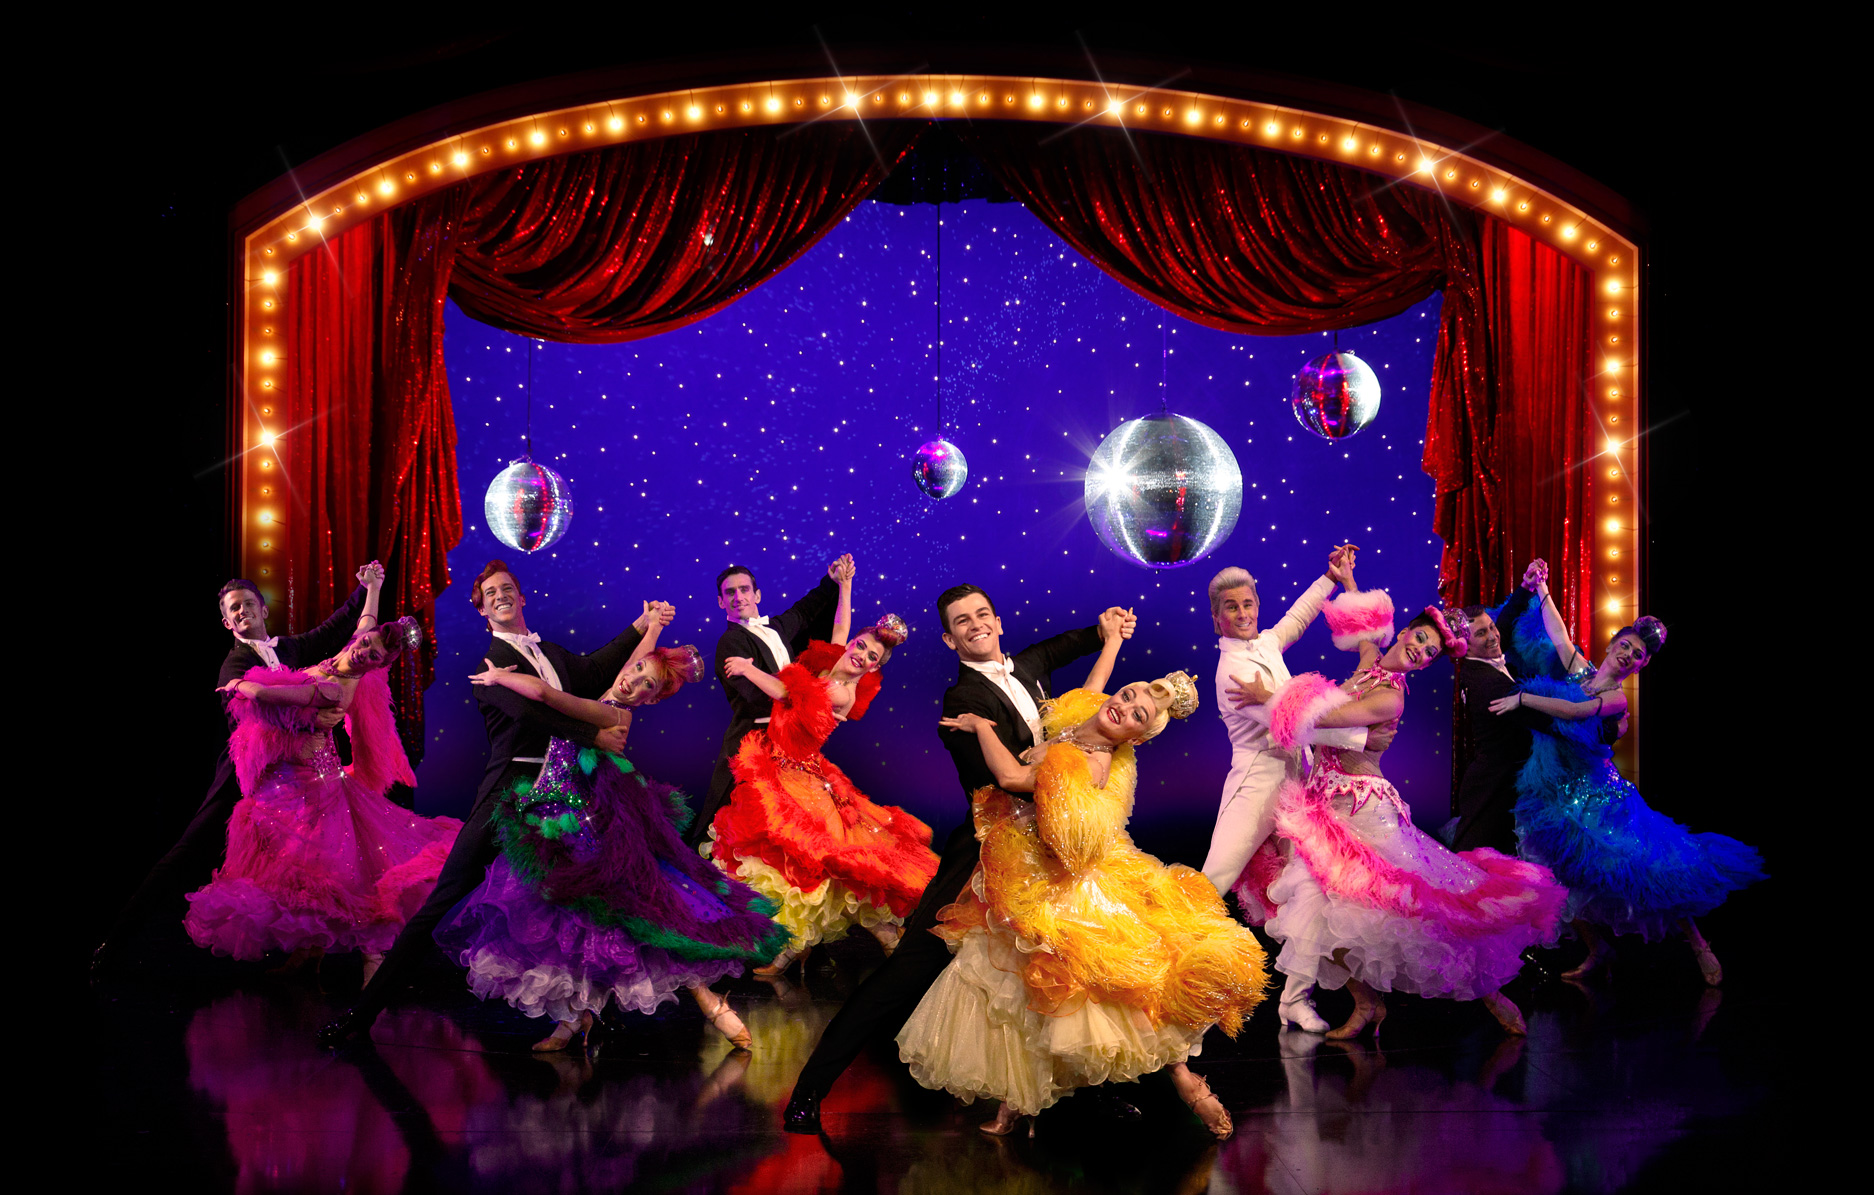 strictly ballroom image notes Strictly ballroom: rewatching classic australian films baz luhrmann's most charming, entertaining film the opening chapter in a career that exploded like a dynamite.